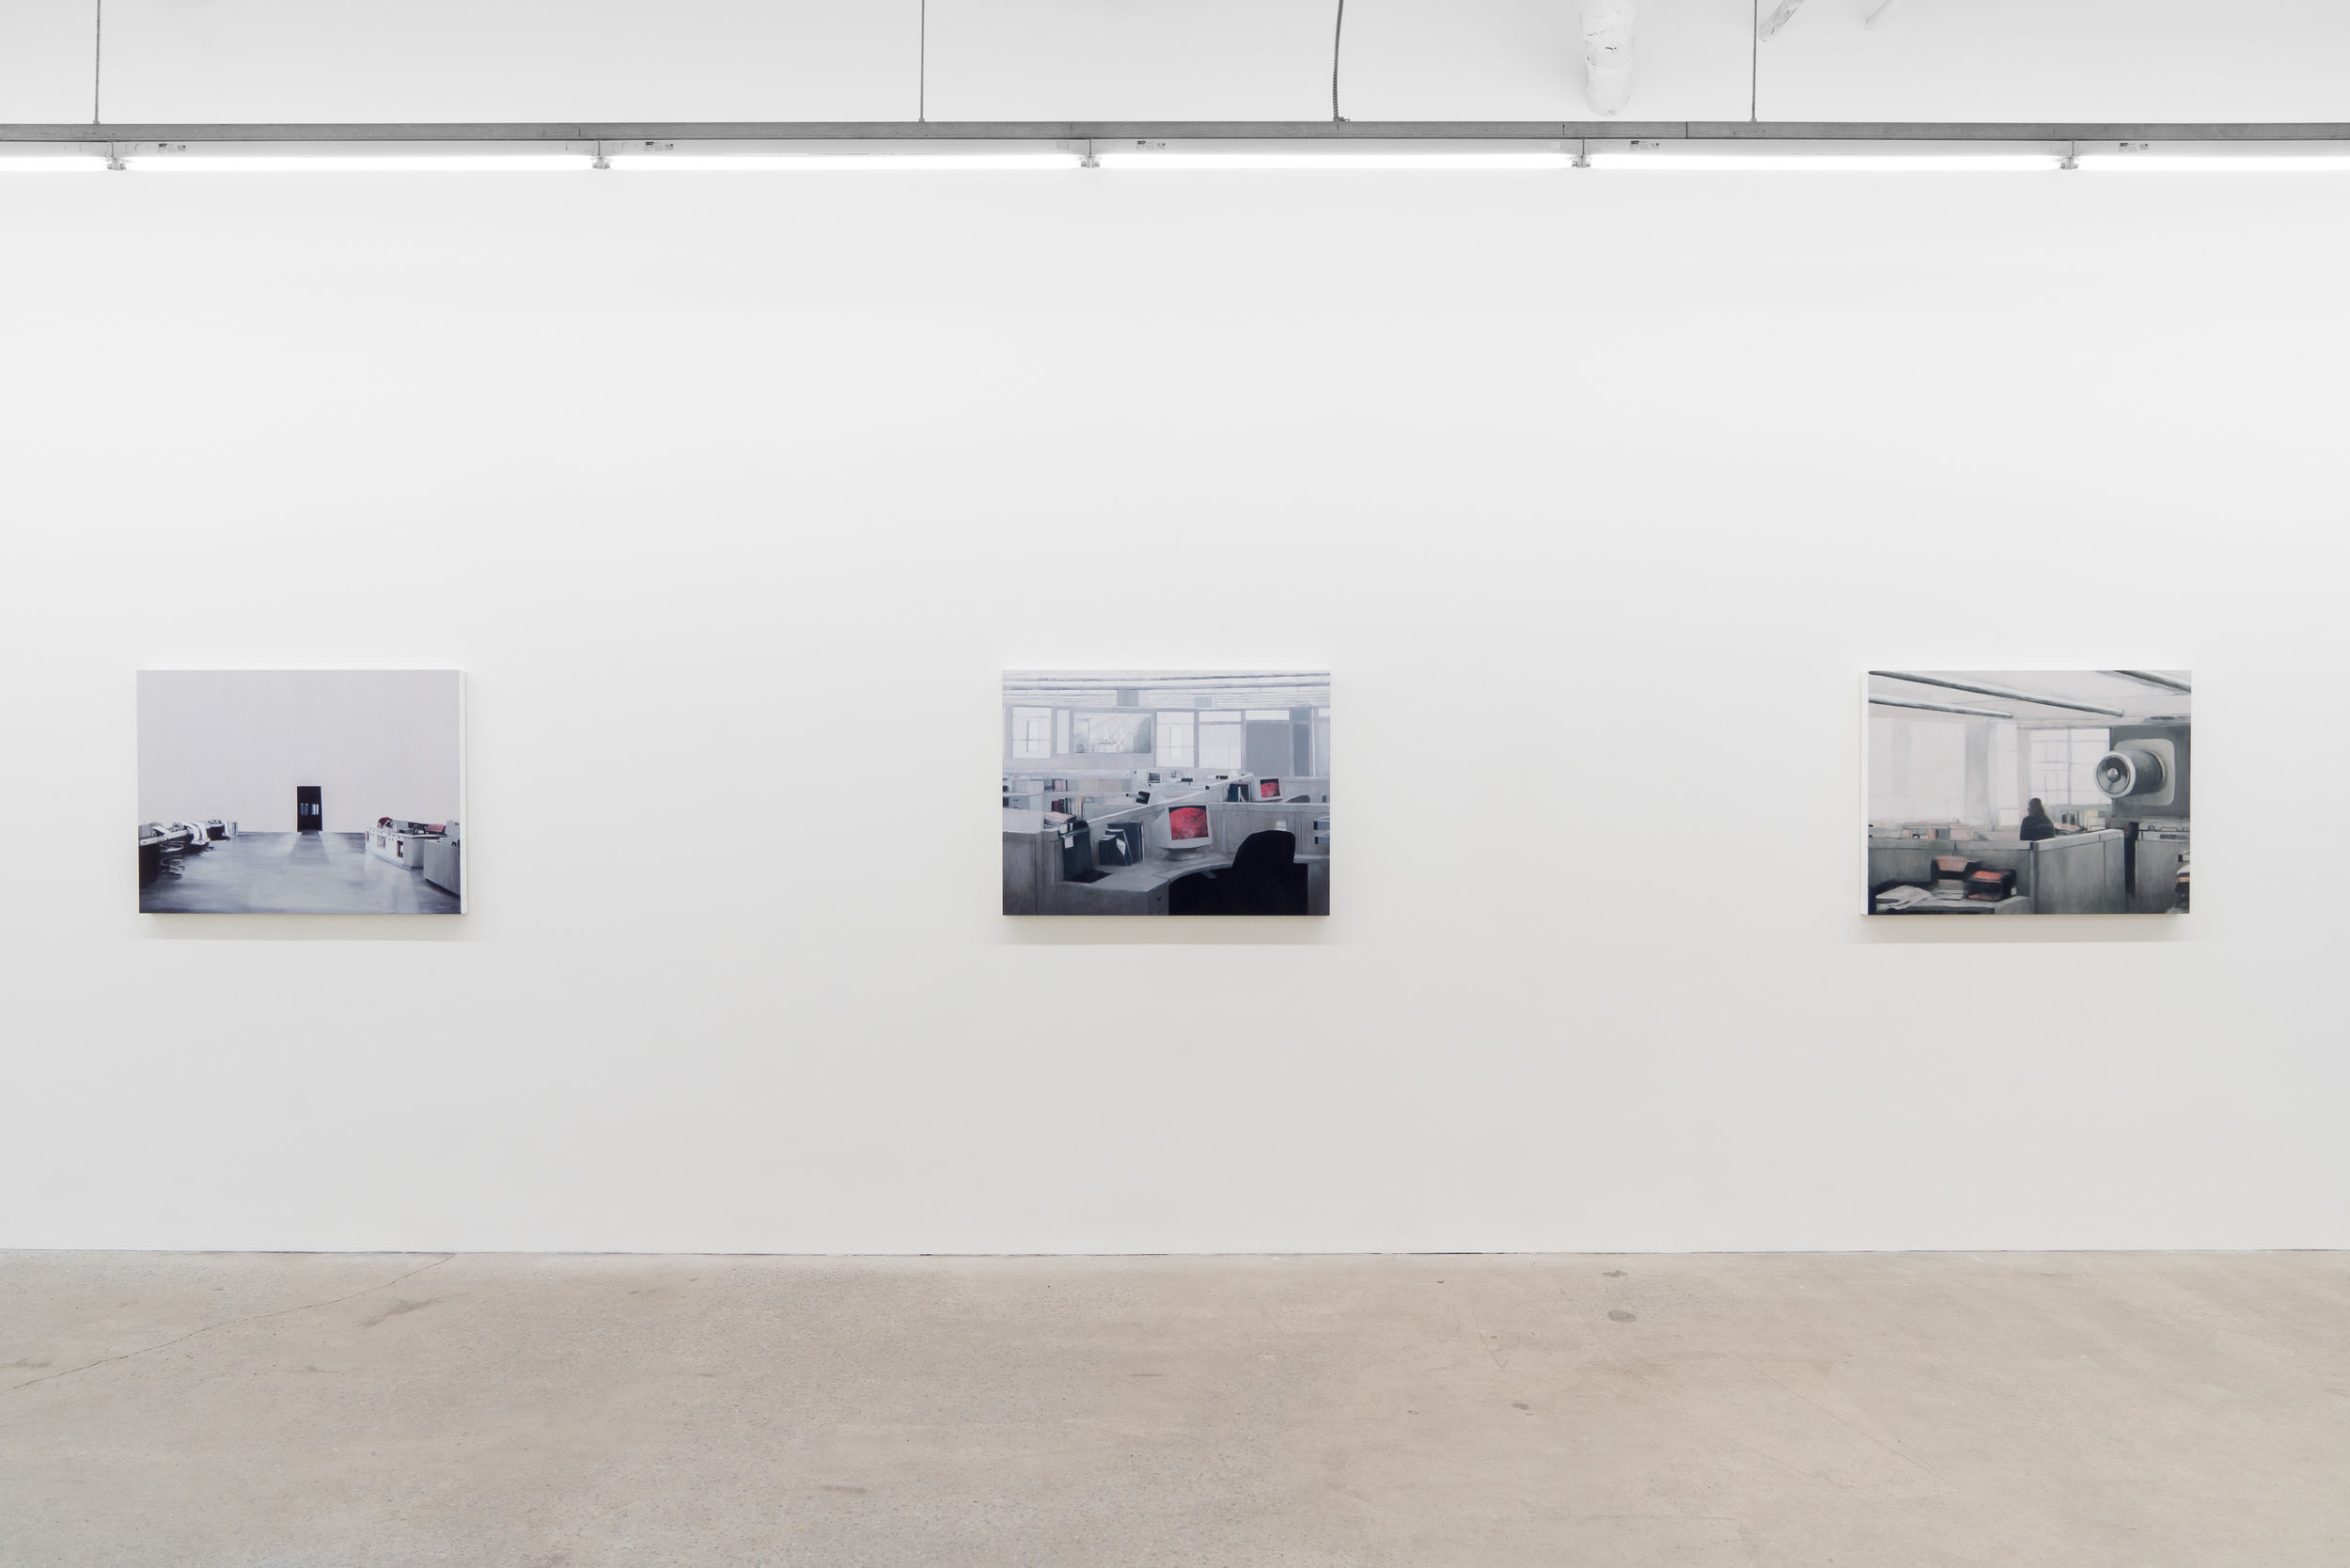 Joe Lima,  Variable Zones,  , 2019, vue d'exposition, Galerie Nicolas Robert, photo : Jean-Michael Seminaro